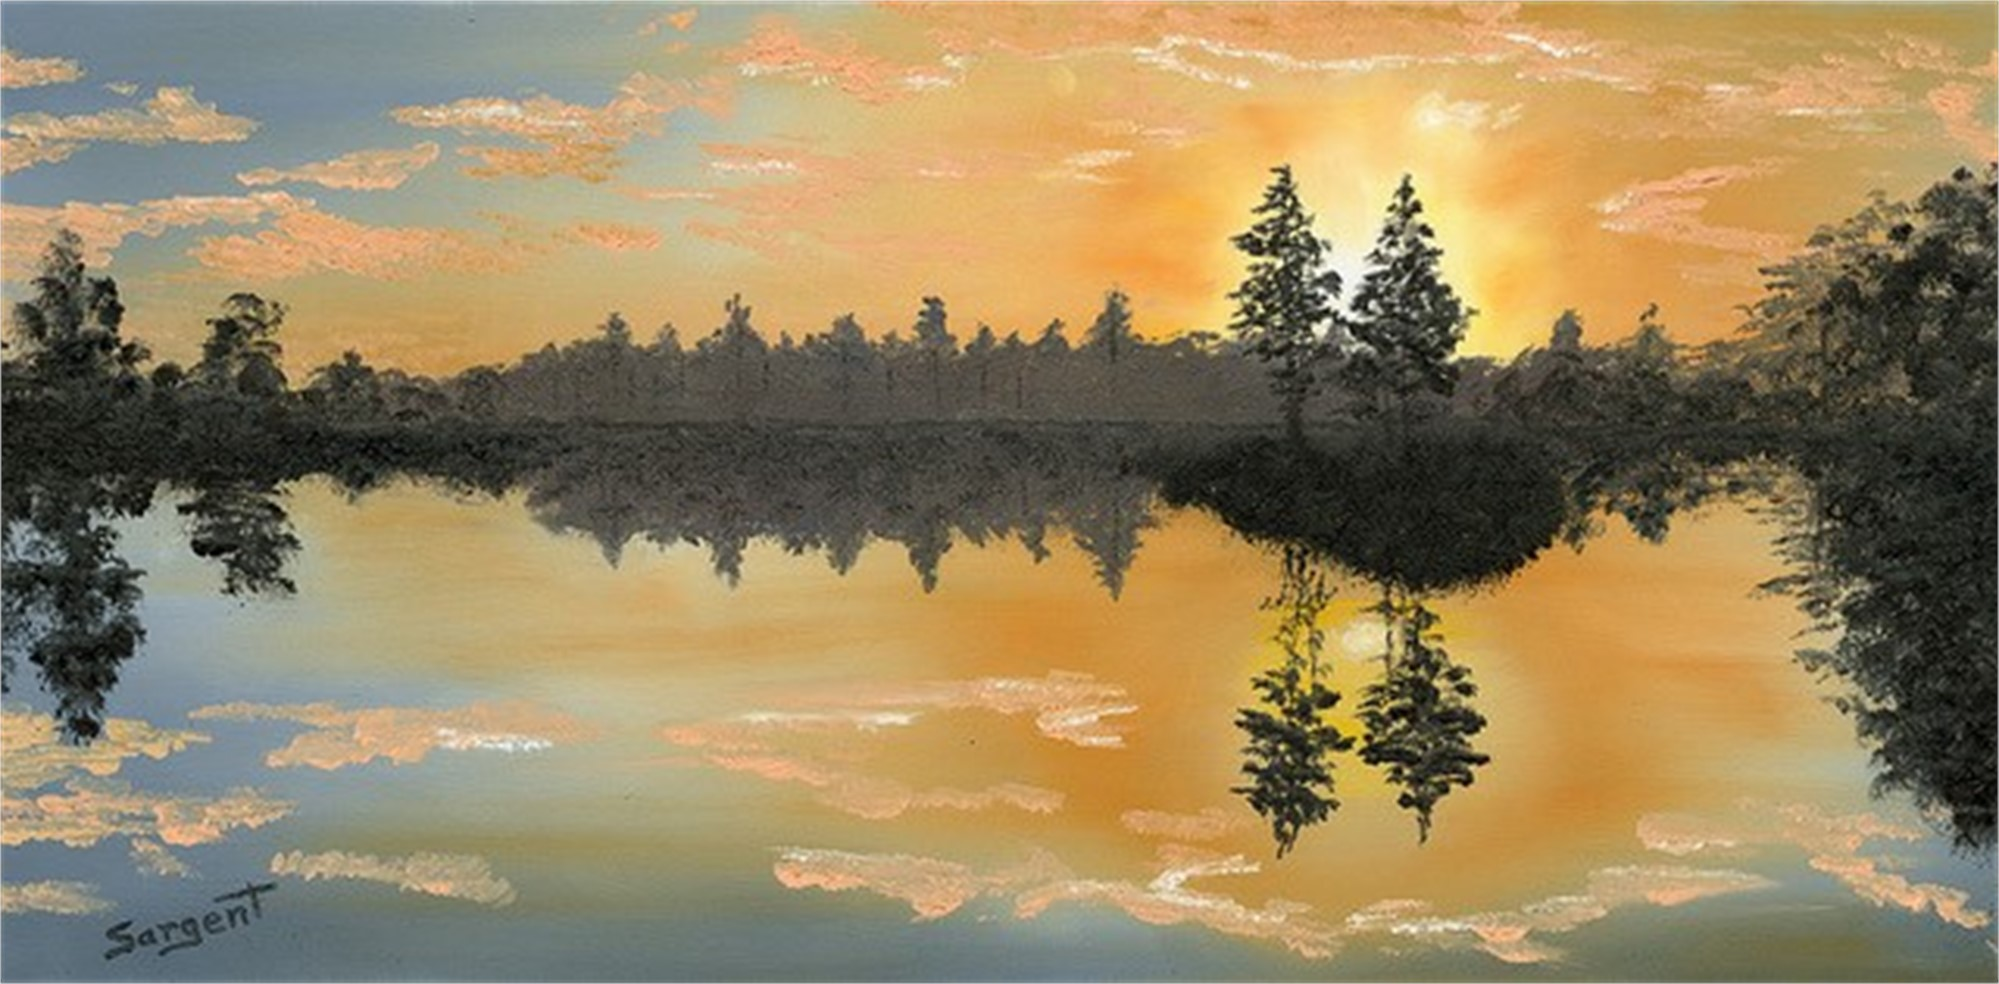 Reflections by Phil Sargent (Canby, OR)